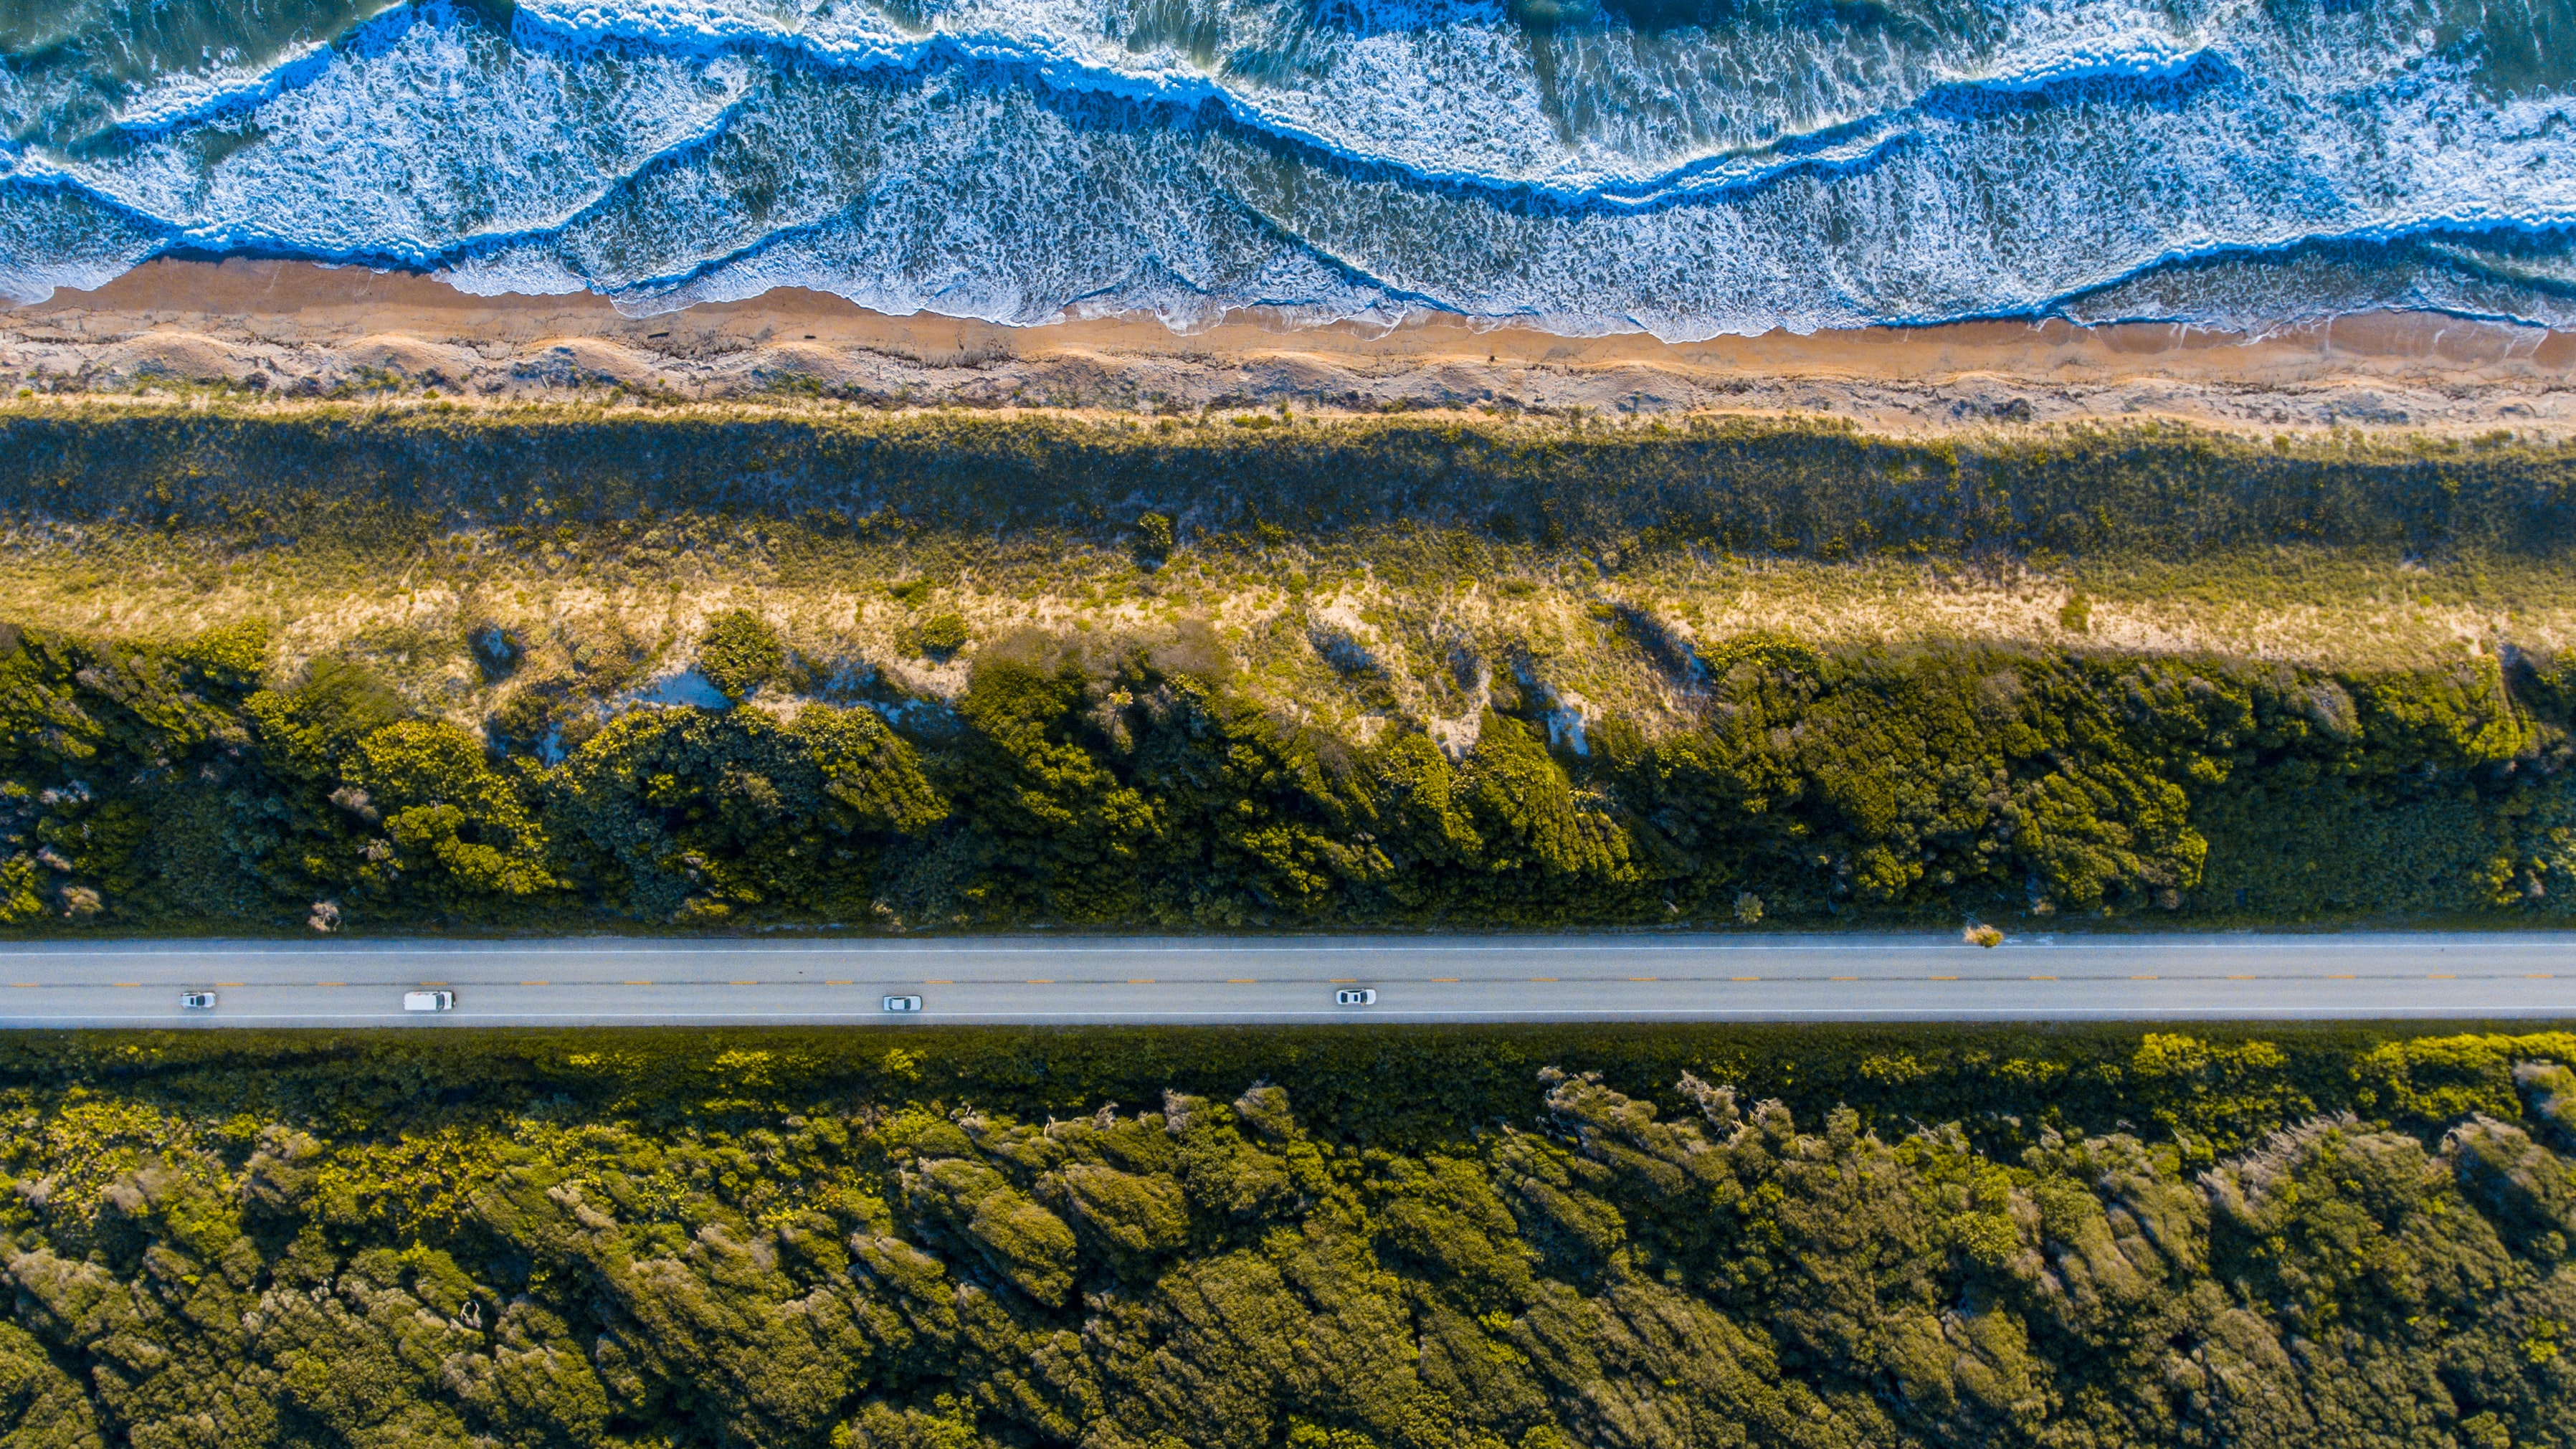 A drone shot of cars on a straight road by the ocean